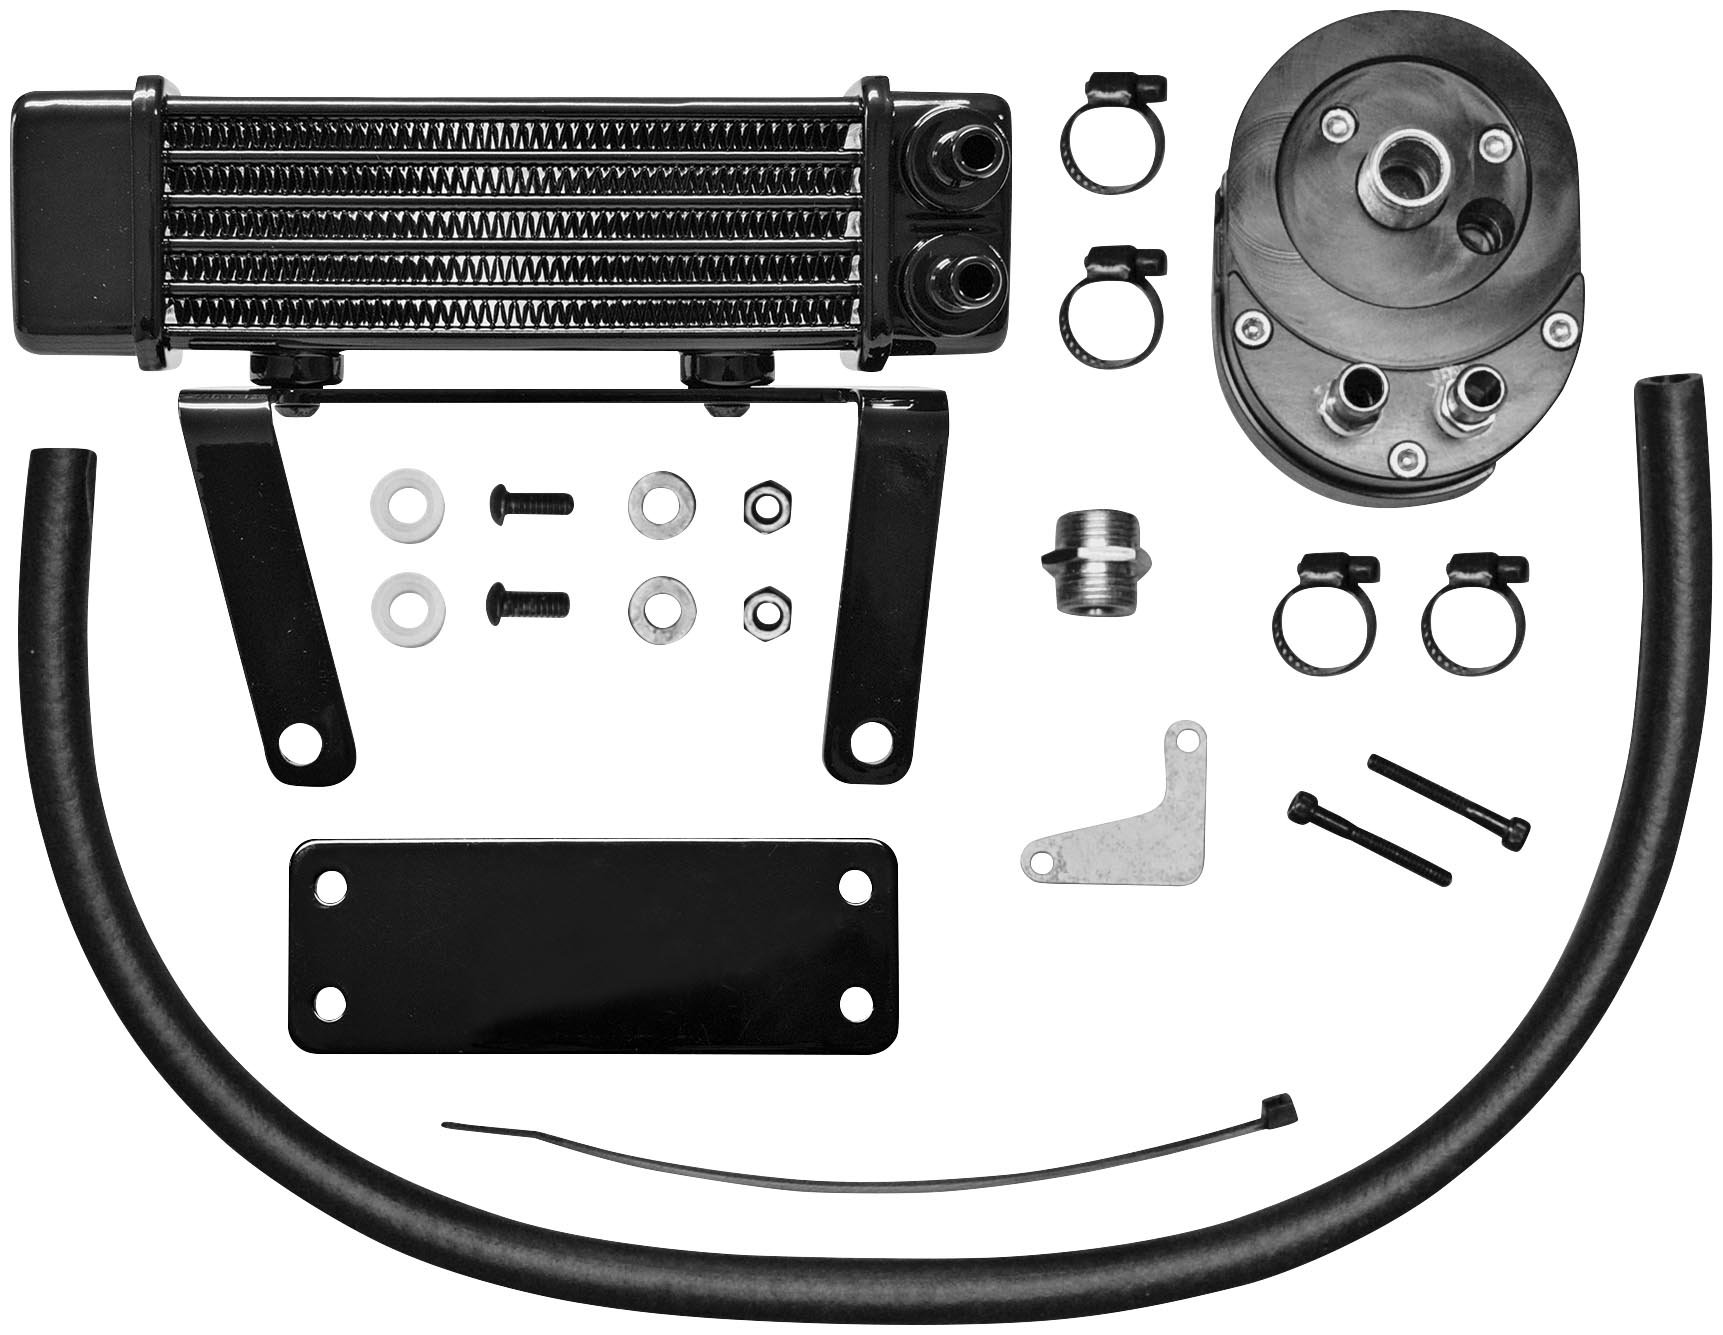 Jagg Oil Coolers Horizontal 6 Row Oil Cooler - Low Mount - Black 750-1290